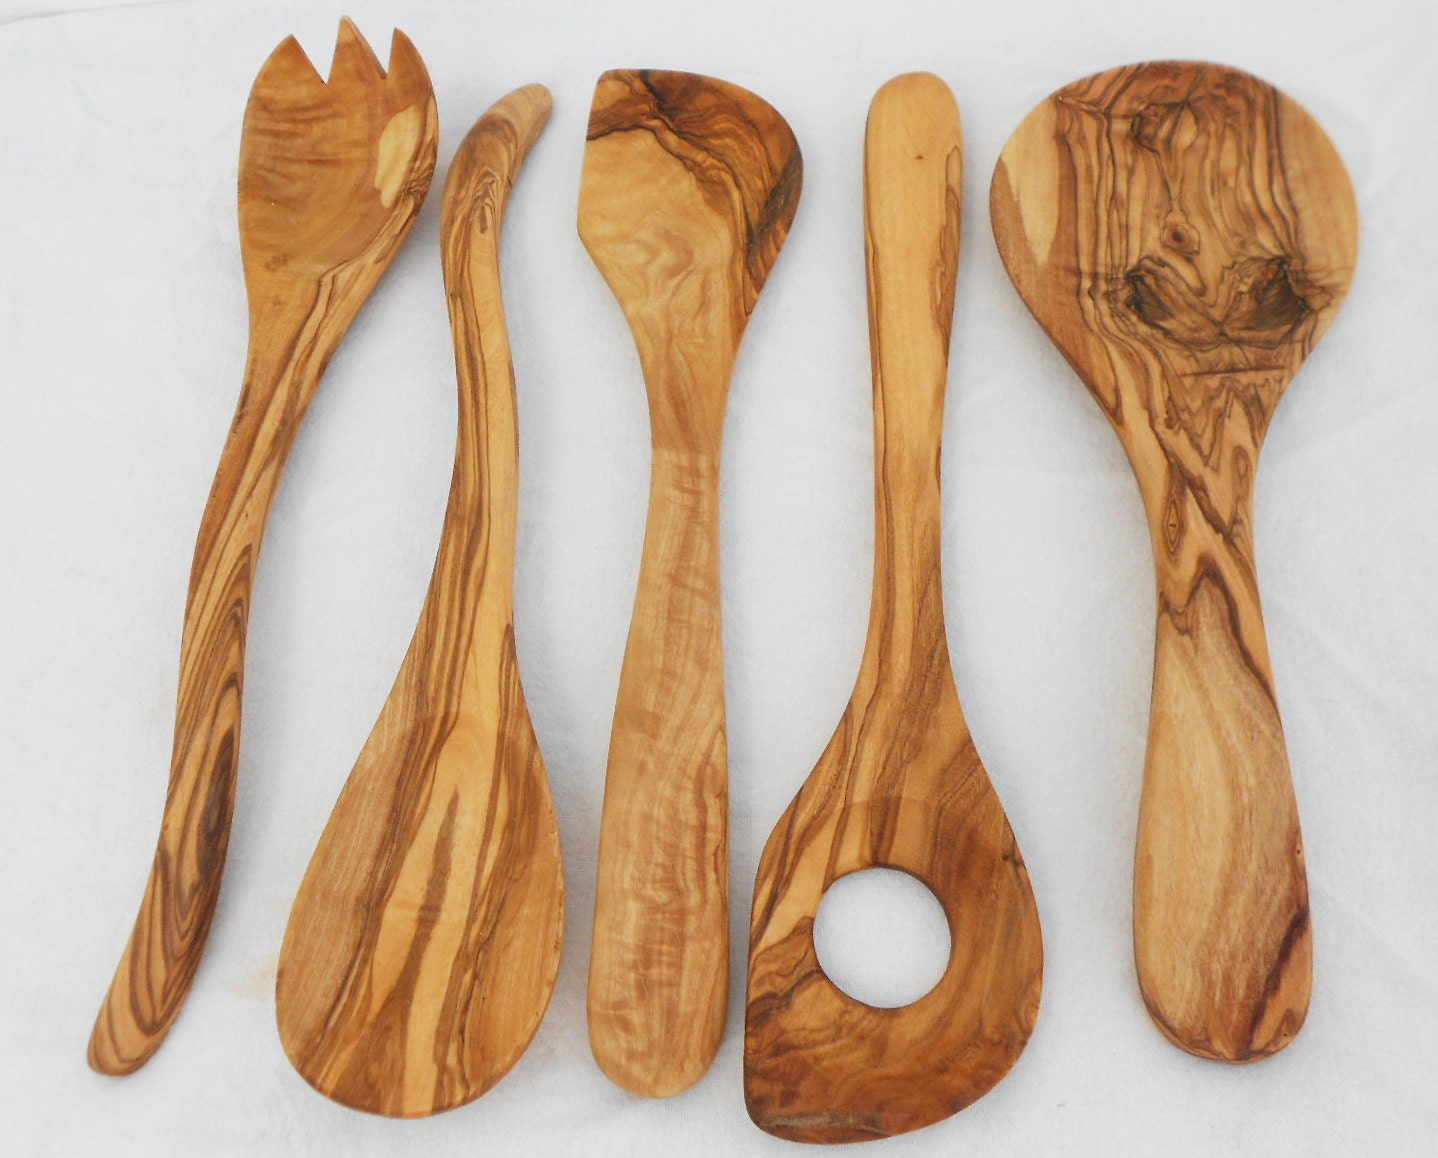 Wooden Kitchen Utensil Set Olive Wood Cooking Utensils Set